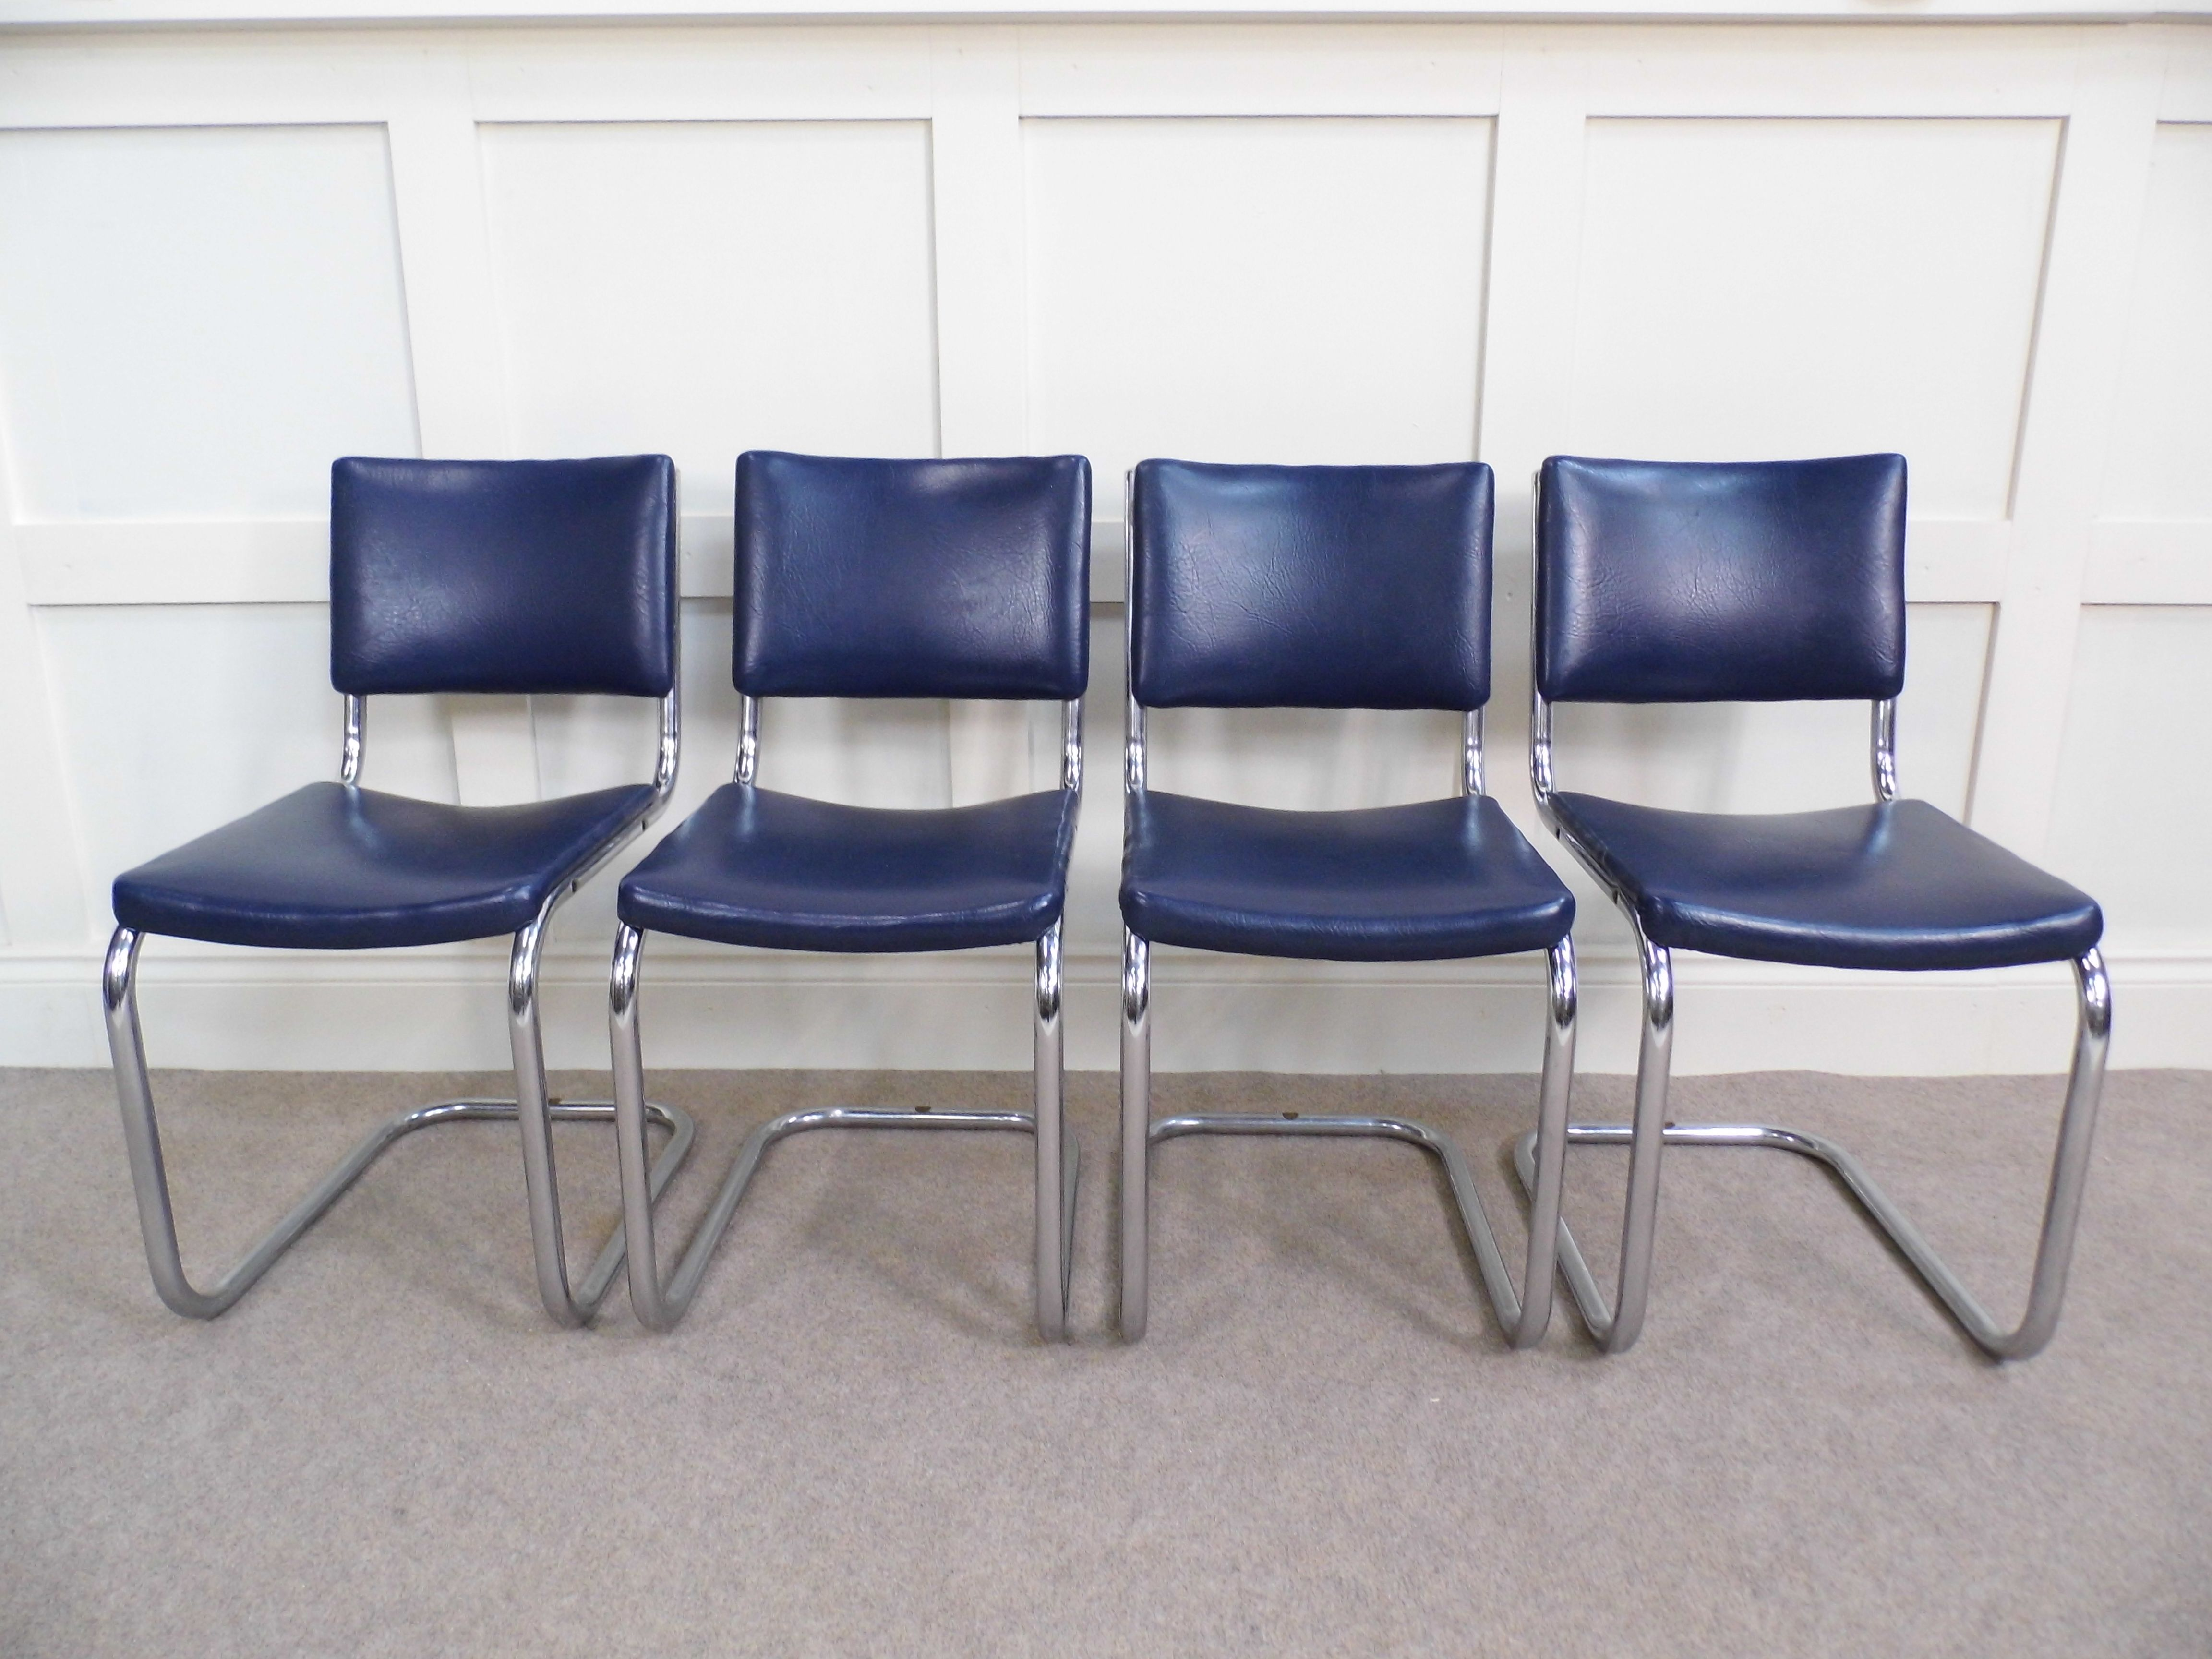 Chrome Vintage Bauhaus Pel Dining Chairs 1930s In Blue